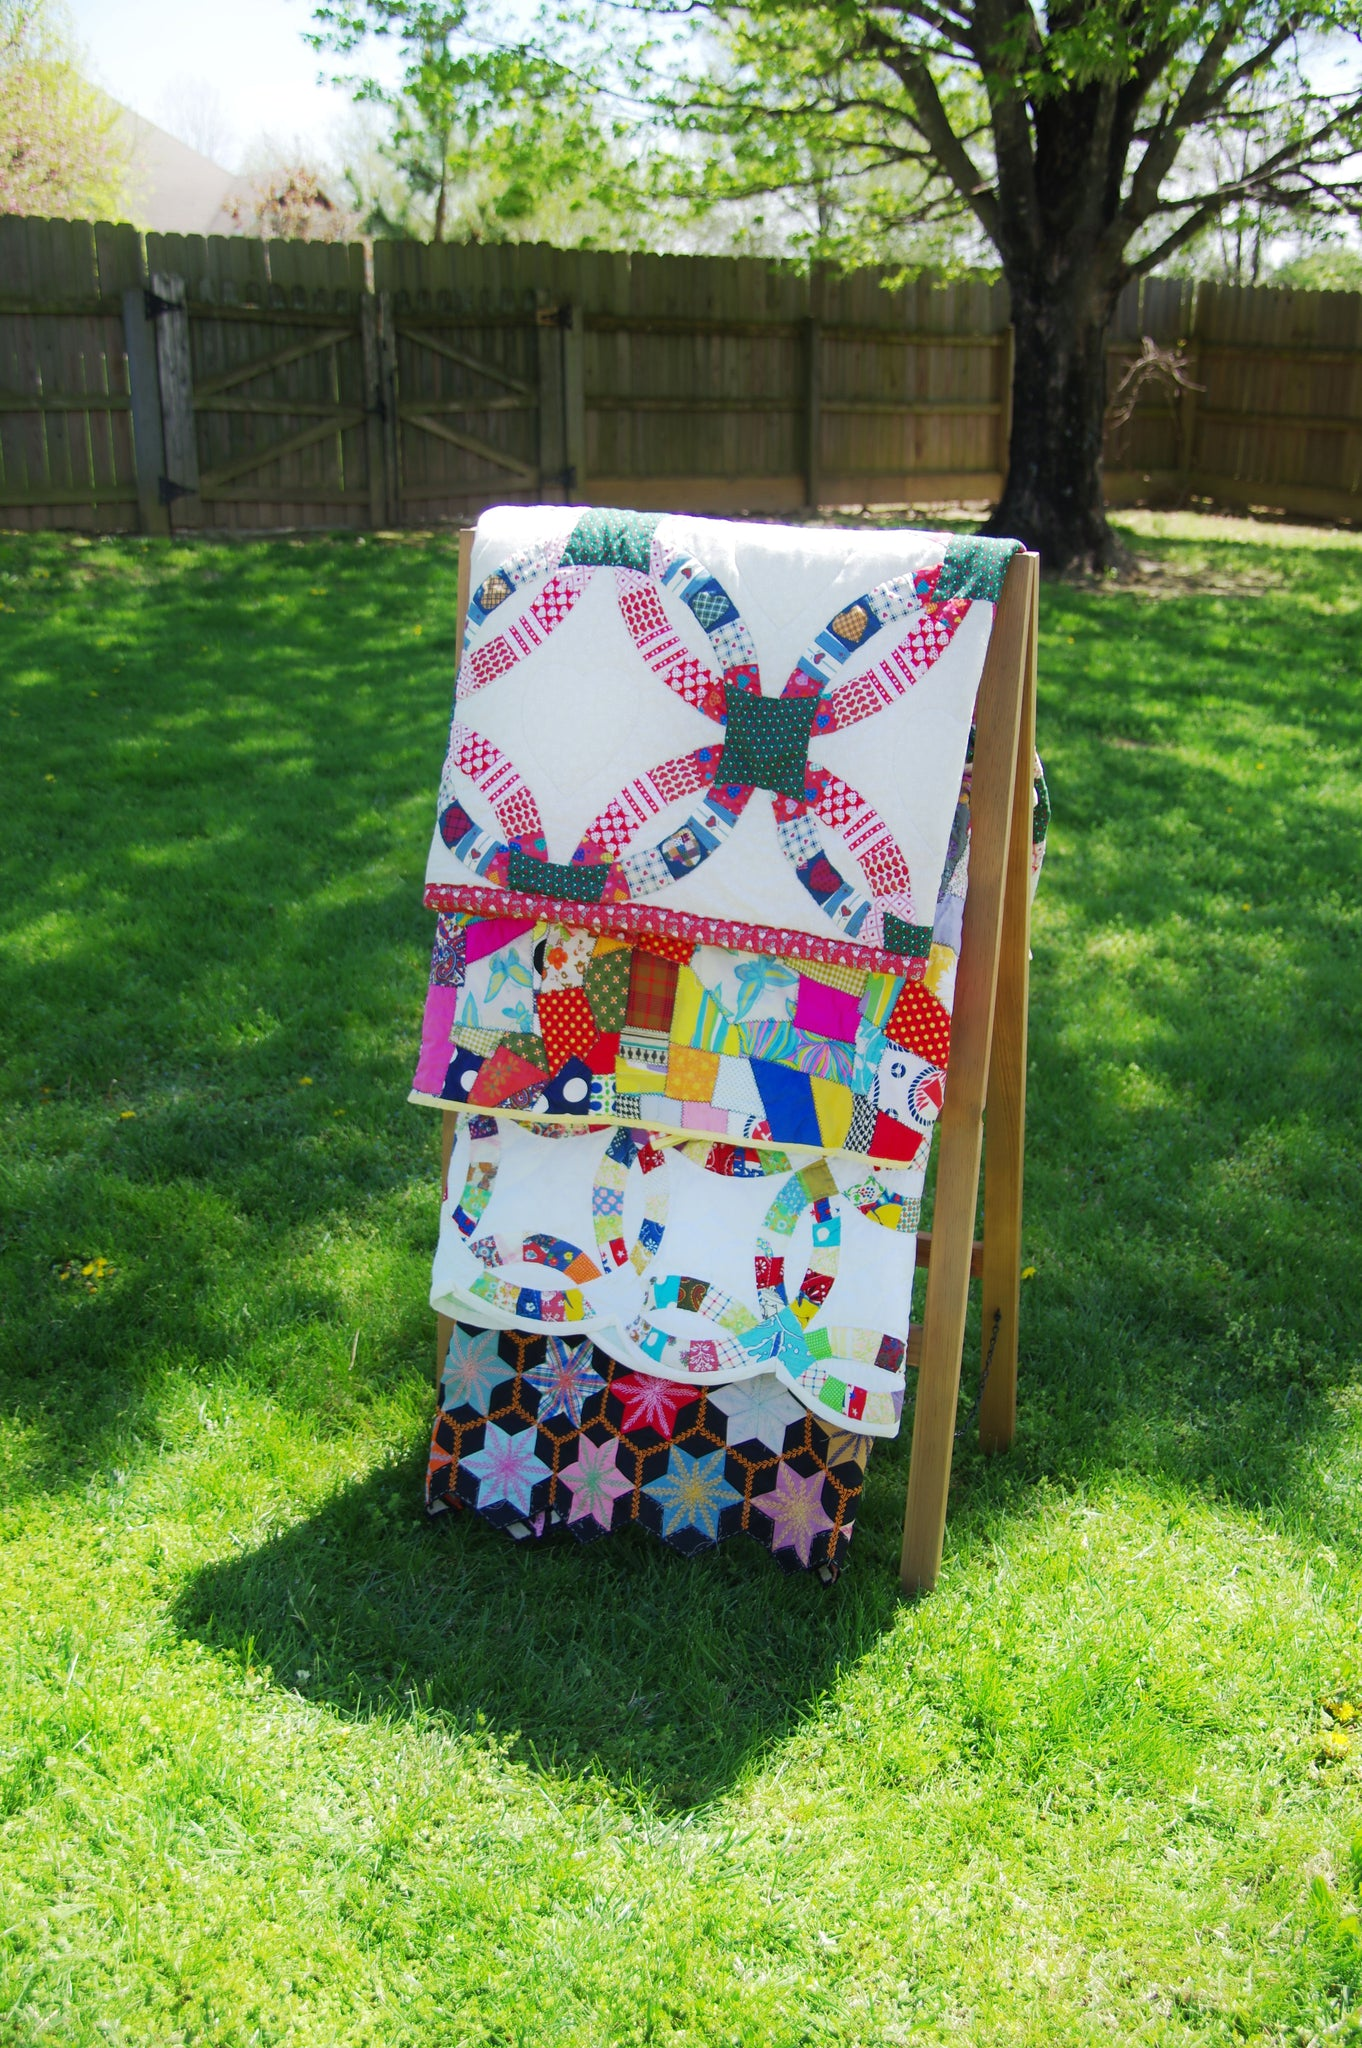 Furniture 4 Tier Quilt Ladder Holds 7 Blankets Or Afghans For Vender Displays Ofto Handmade Rack Shams And A Comforter Folds Flat Storage Non Toxic Finish Great Pillows Craft Show Booths